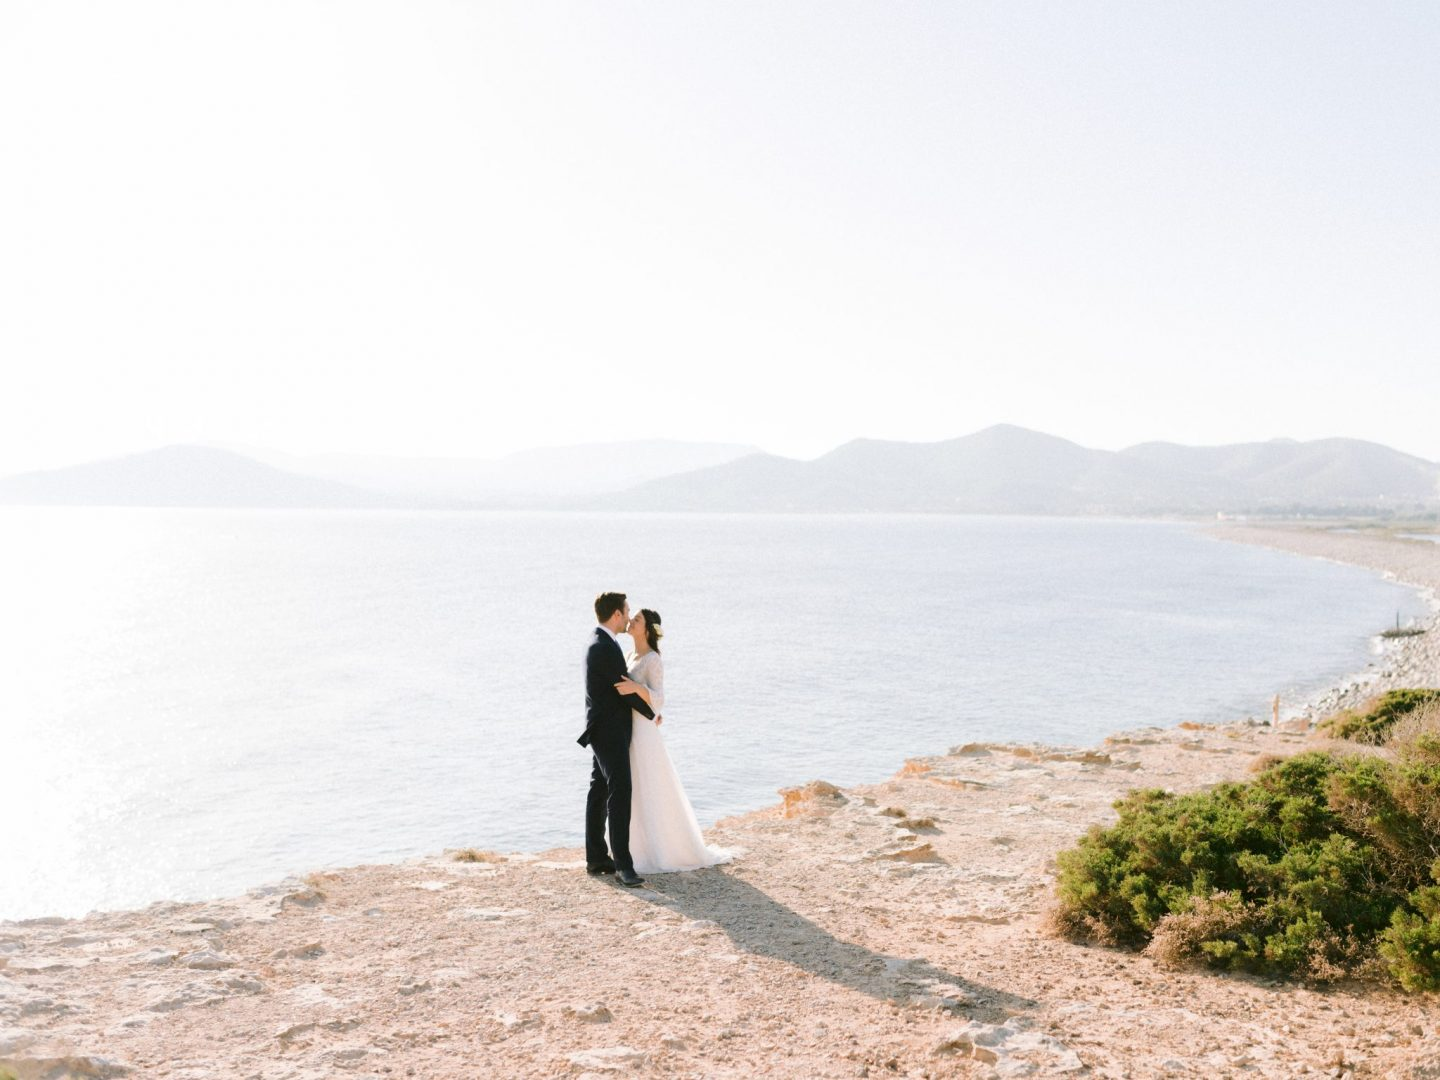 Wedding Photographer Ibiza, Experimental Beach, Youri Claessens Photography